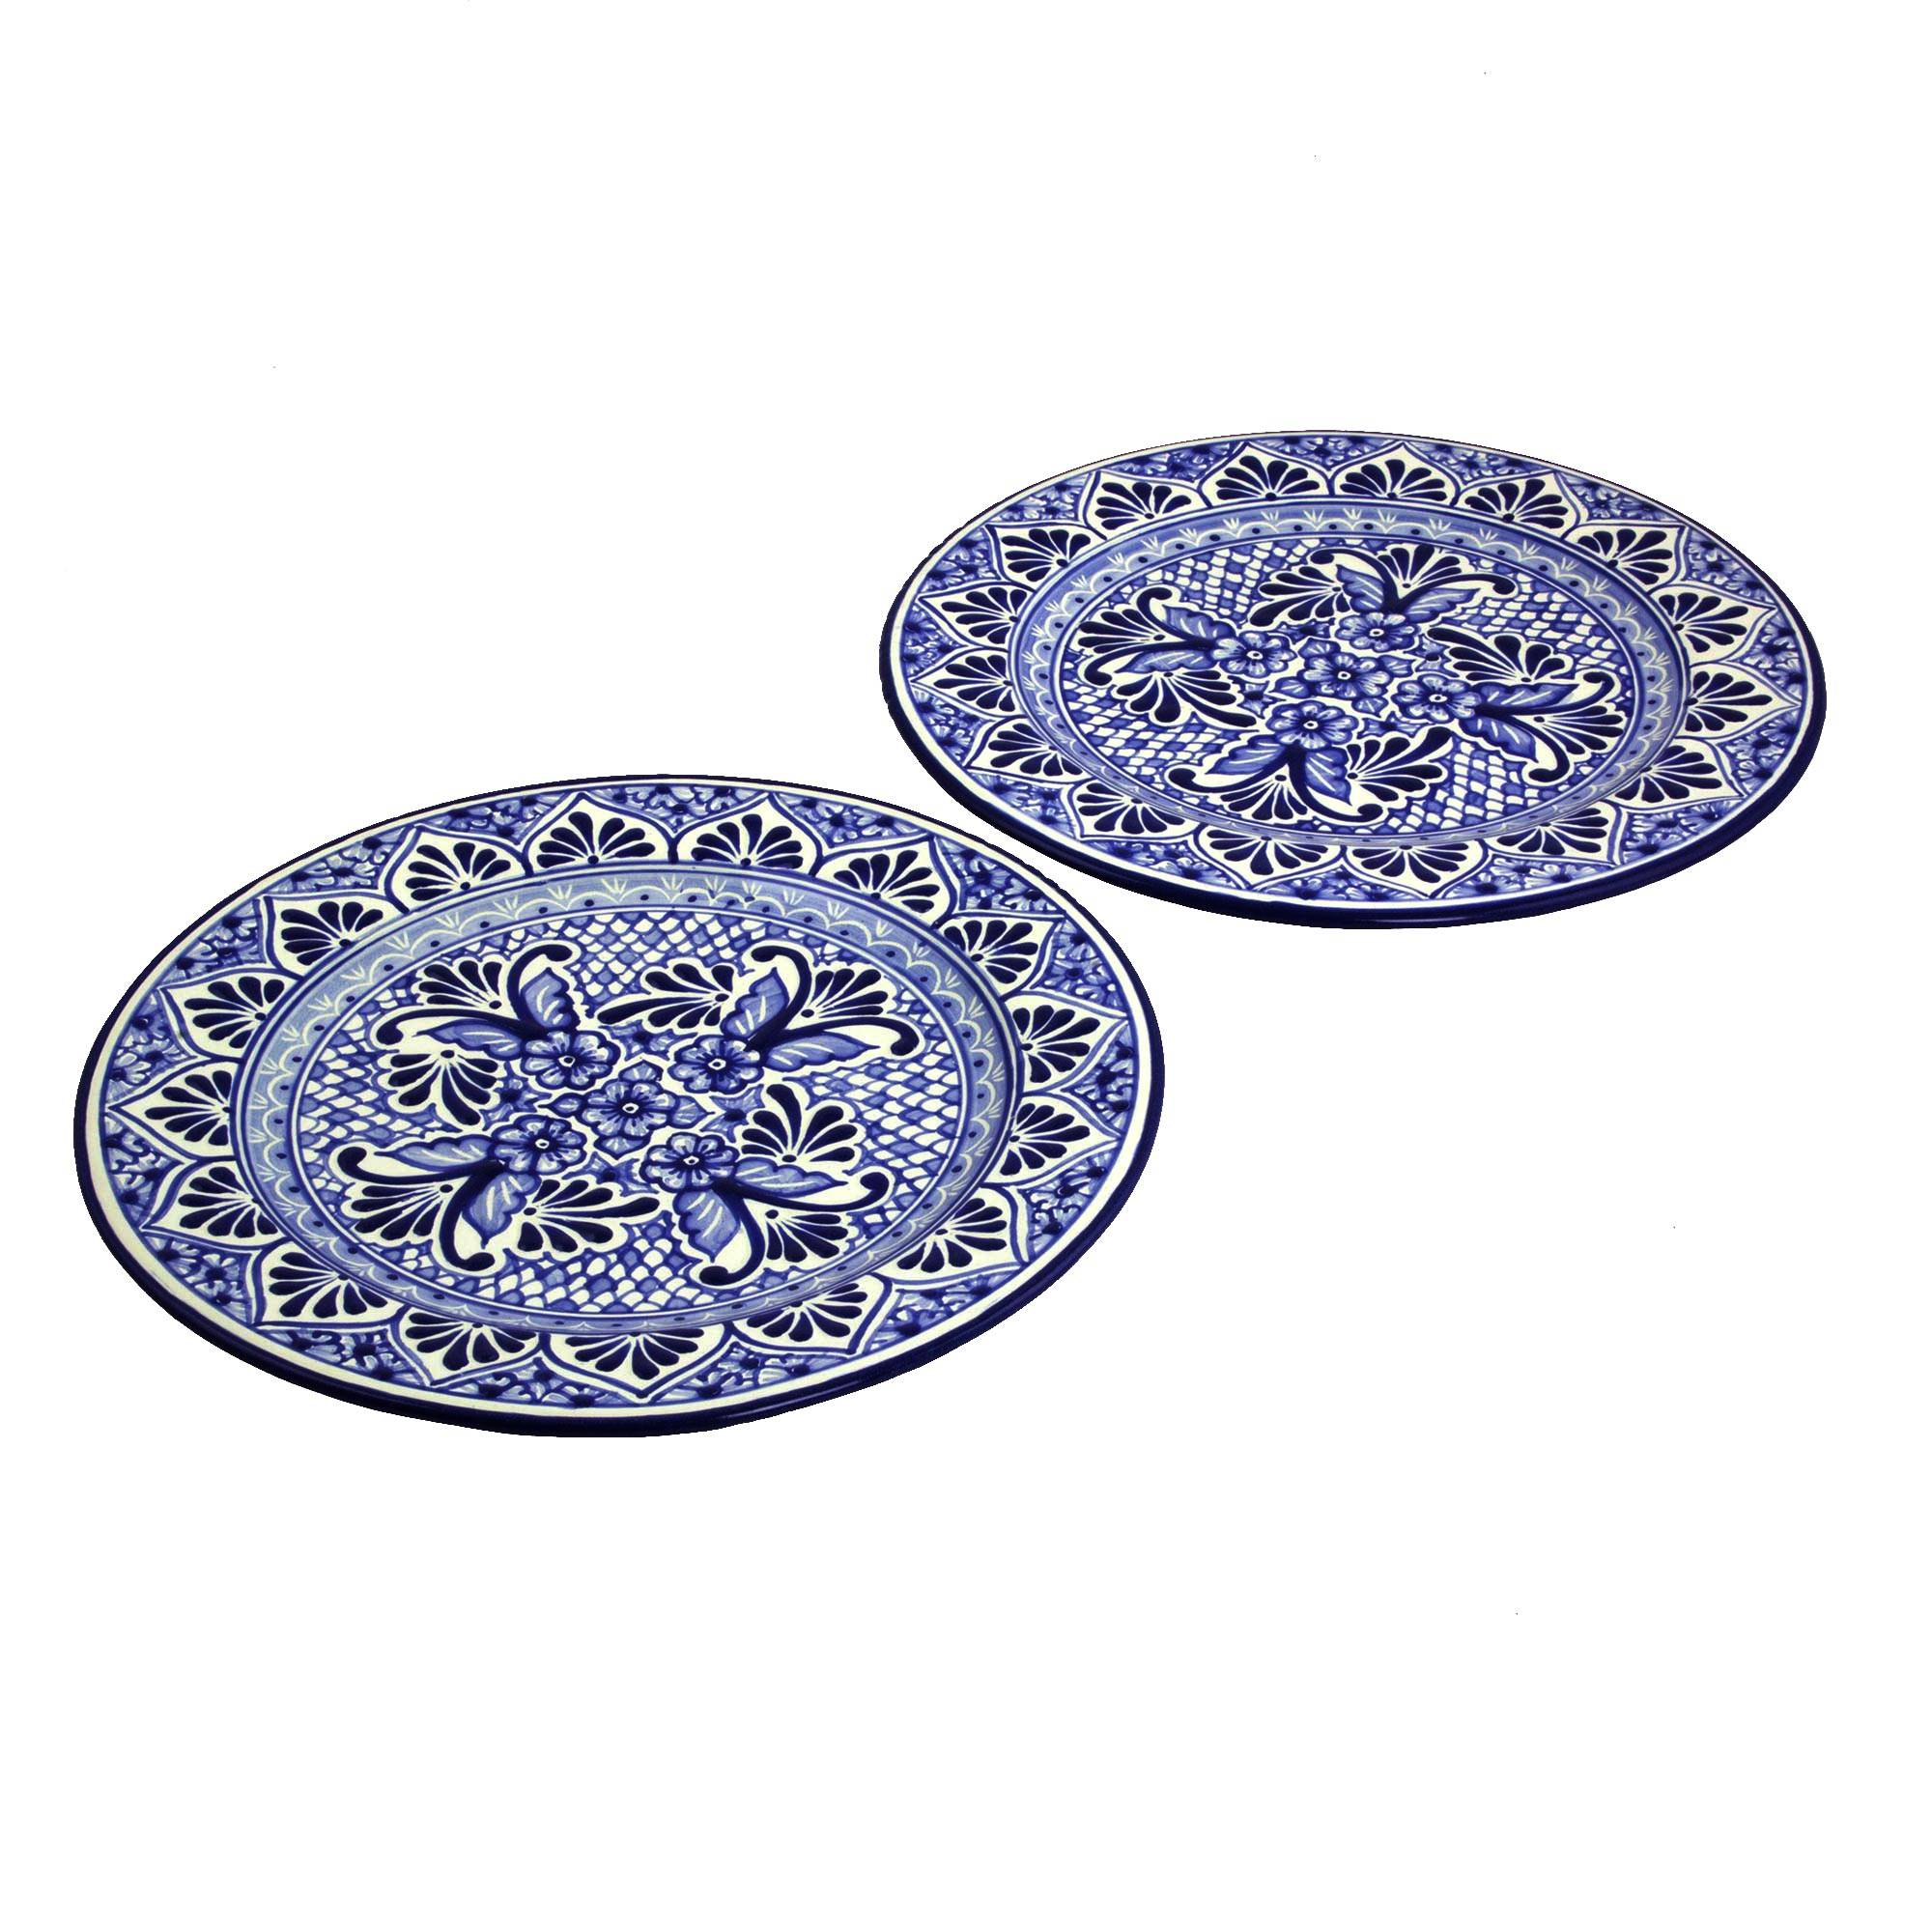 """Details about  /TALAVERA PLATE 8/"""" Lead Free Lemons and flowers NEW"""